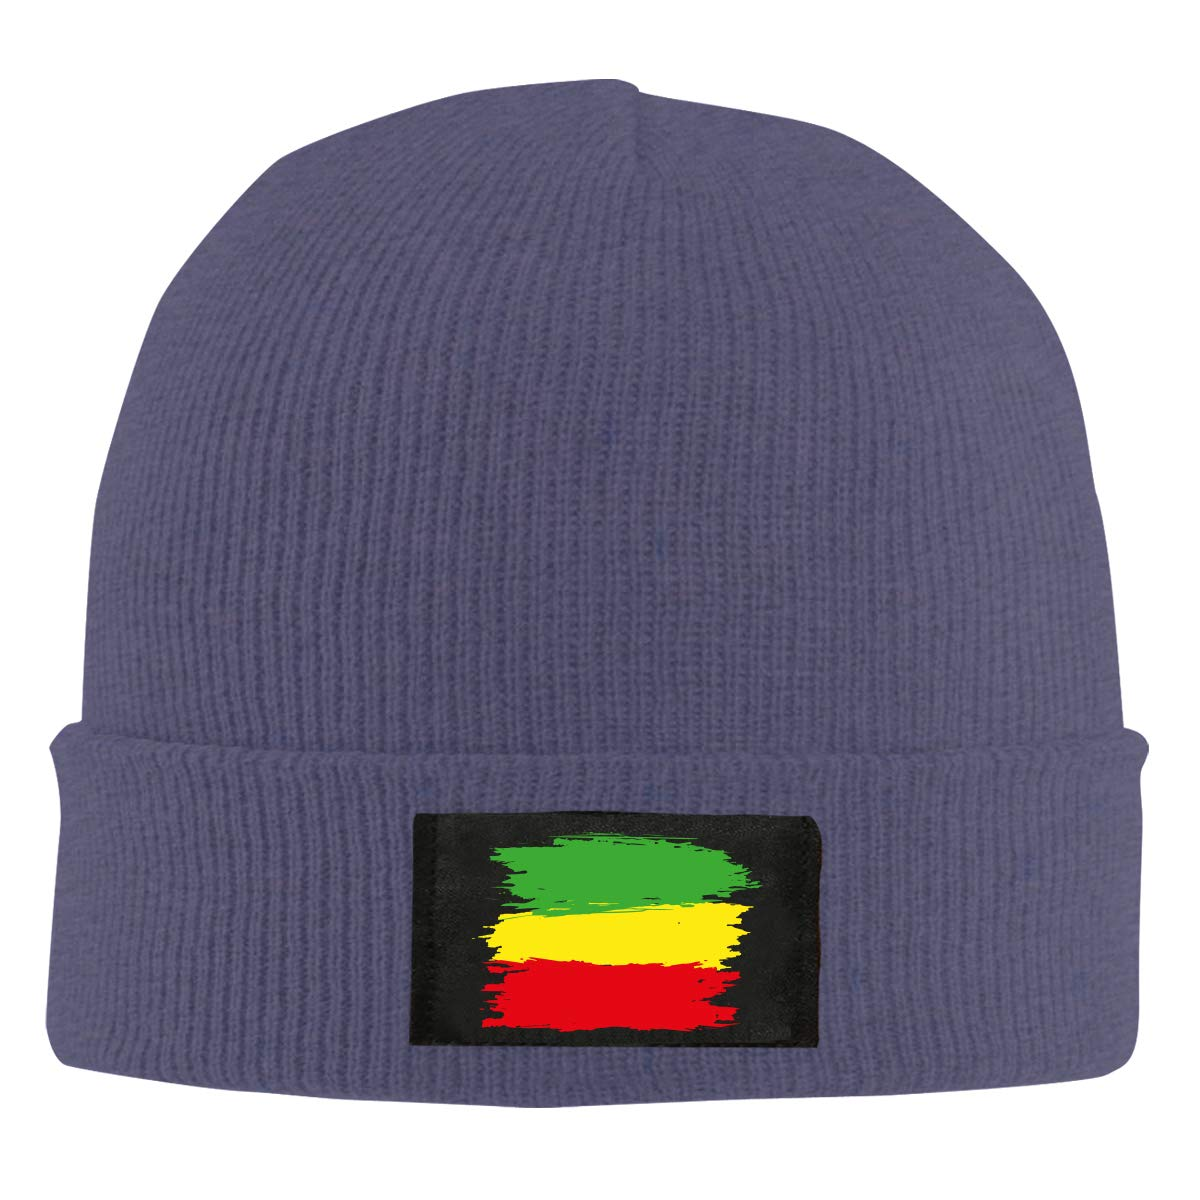 100/% Acrylic Comfortable Skiing Cap BF5Y6z/&MA Mens and Womens Grunge Rasta Flag Knitted Hat